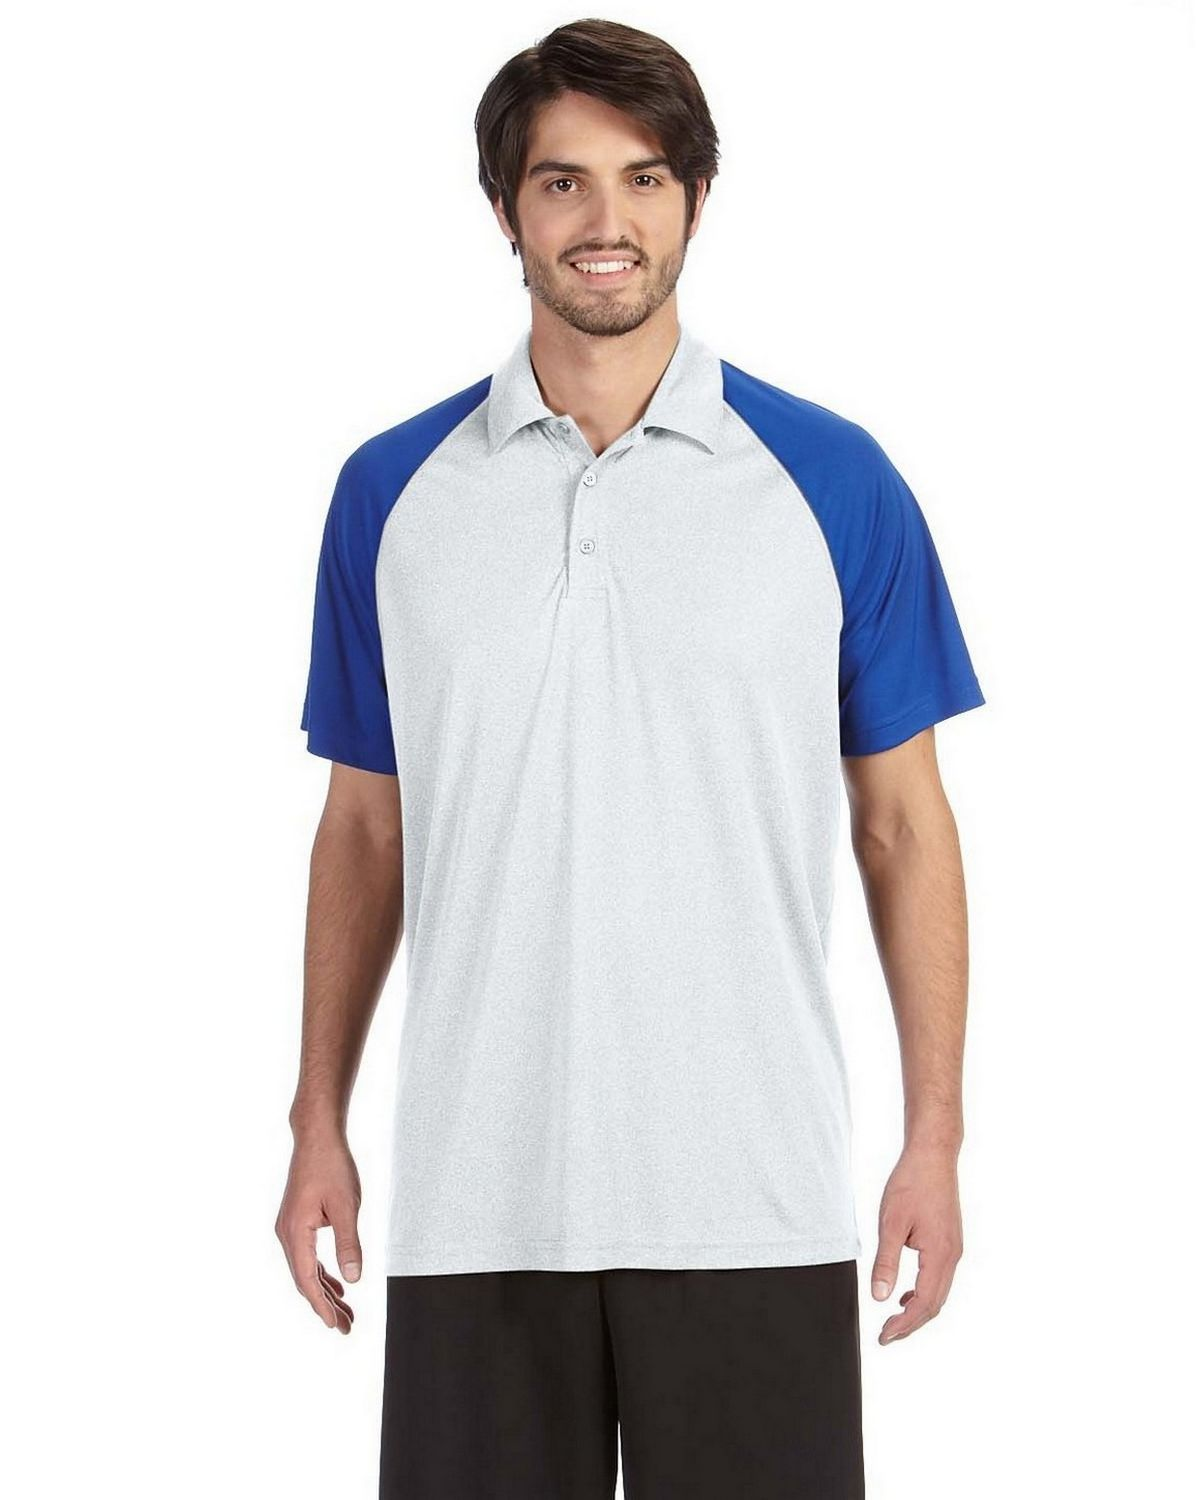 All Sport M1829 Mens Performance Raglan Polo - White - XS M1829